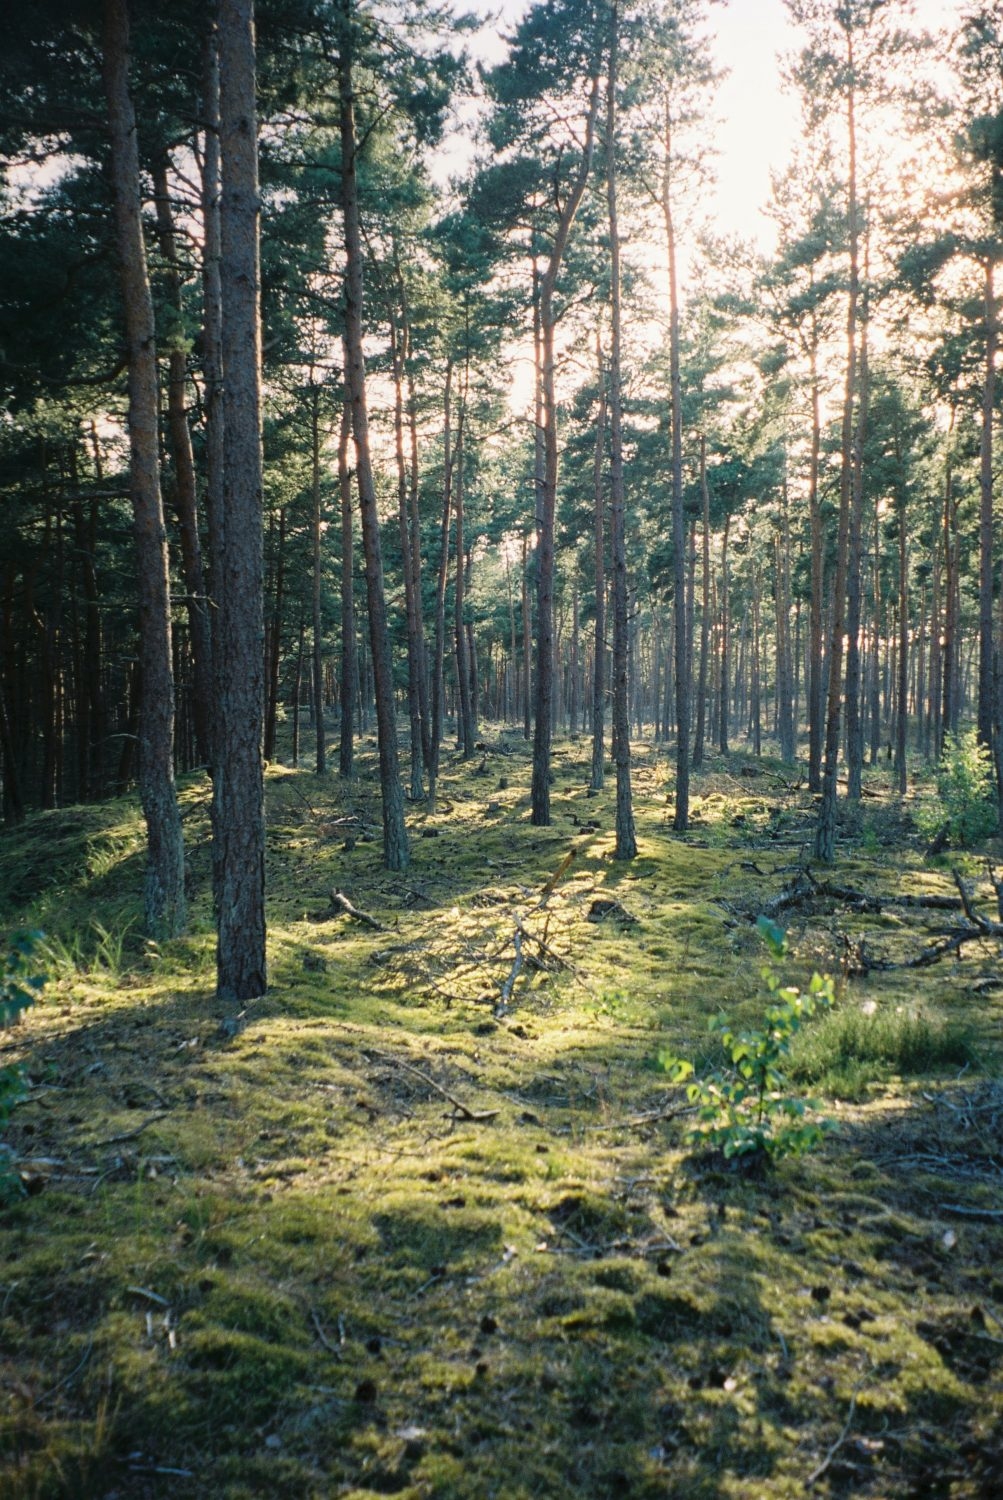 A pine forest stand